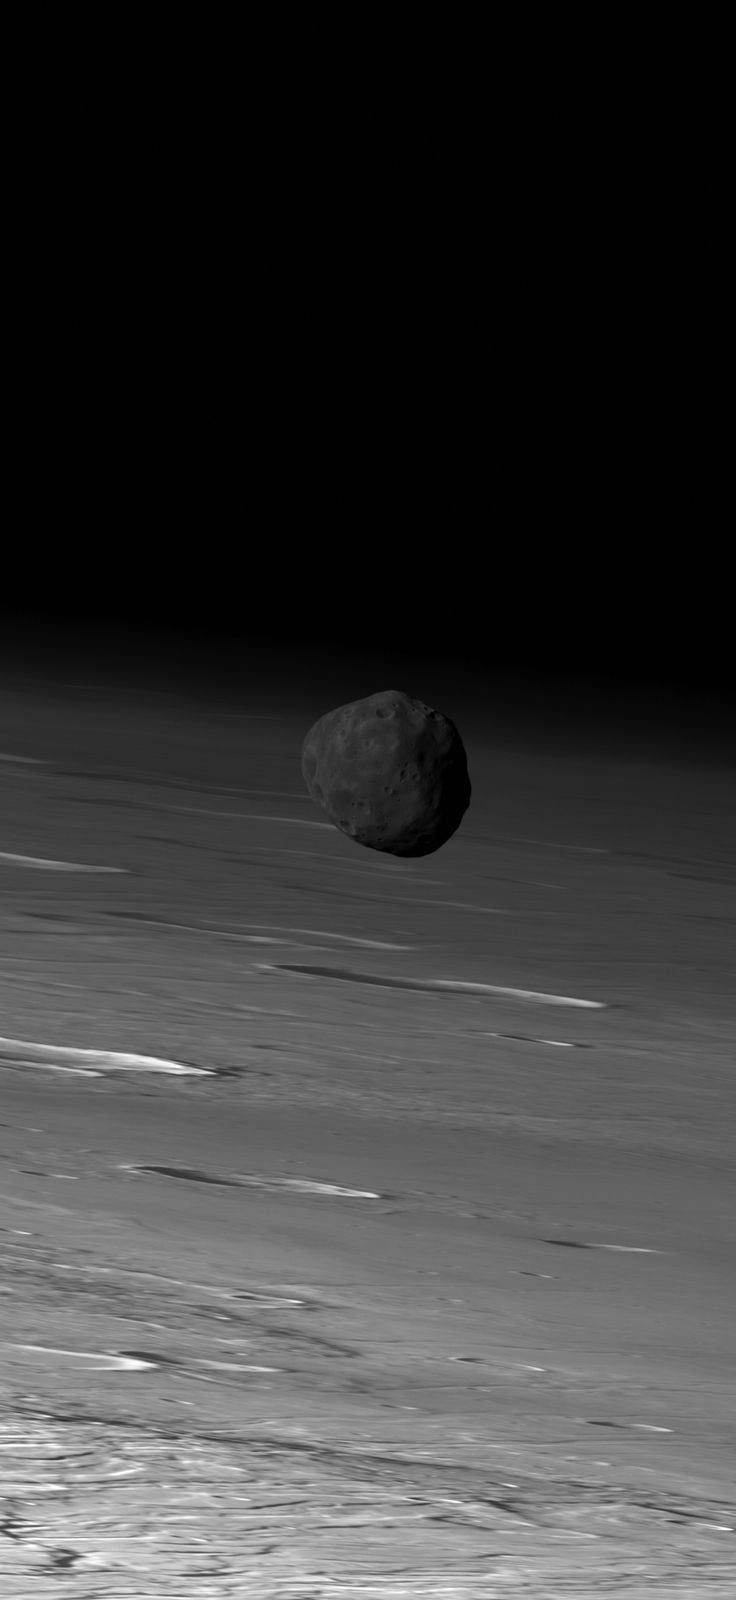 Phobos flying over the surface of Mars